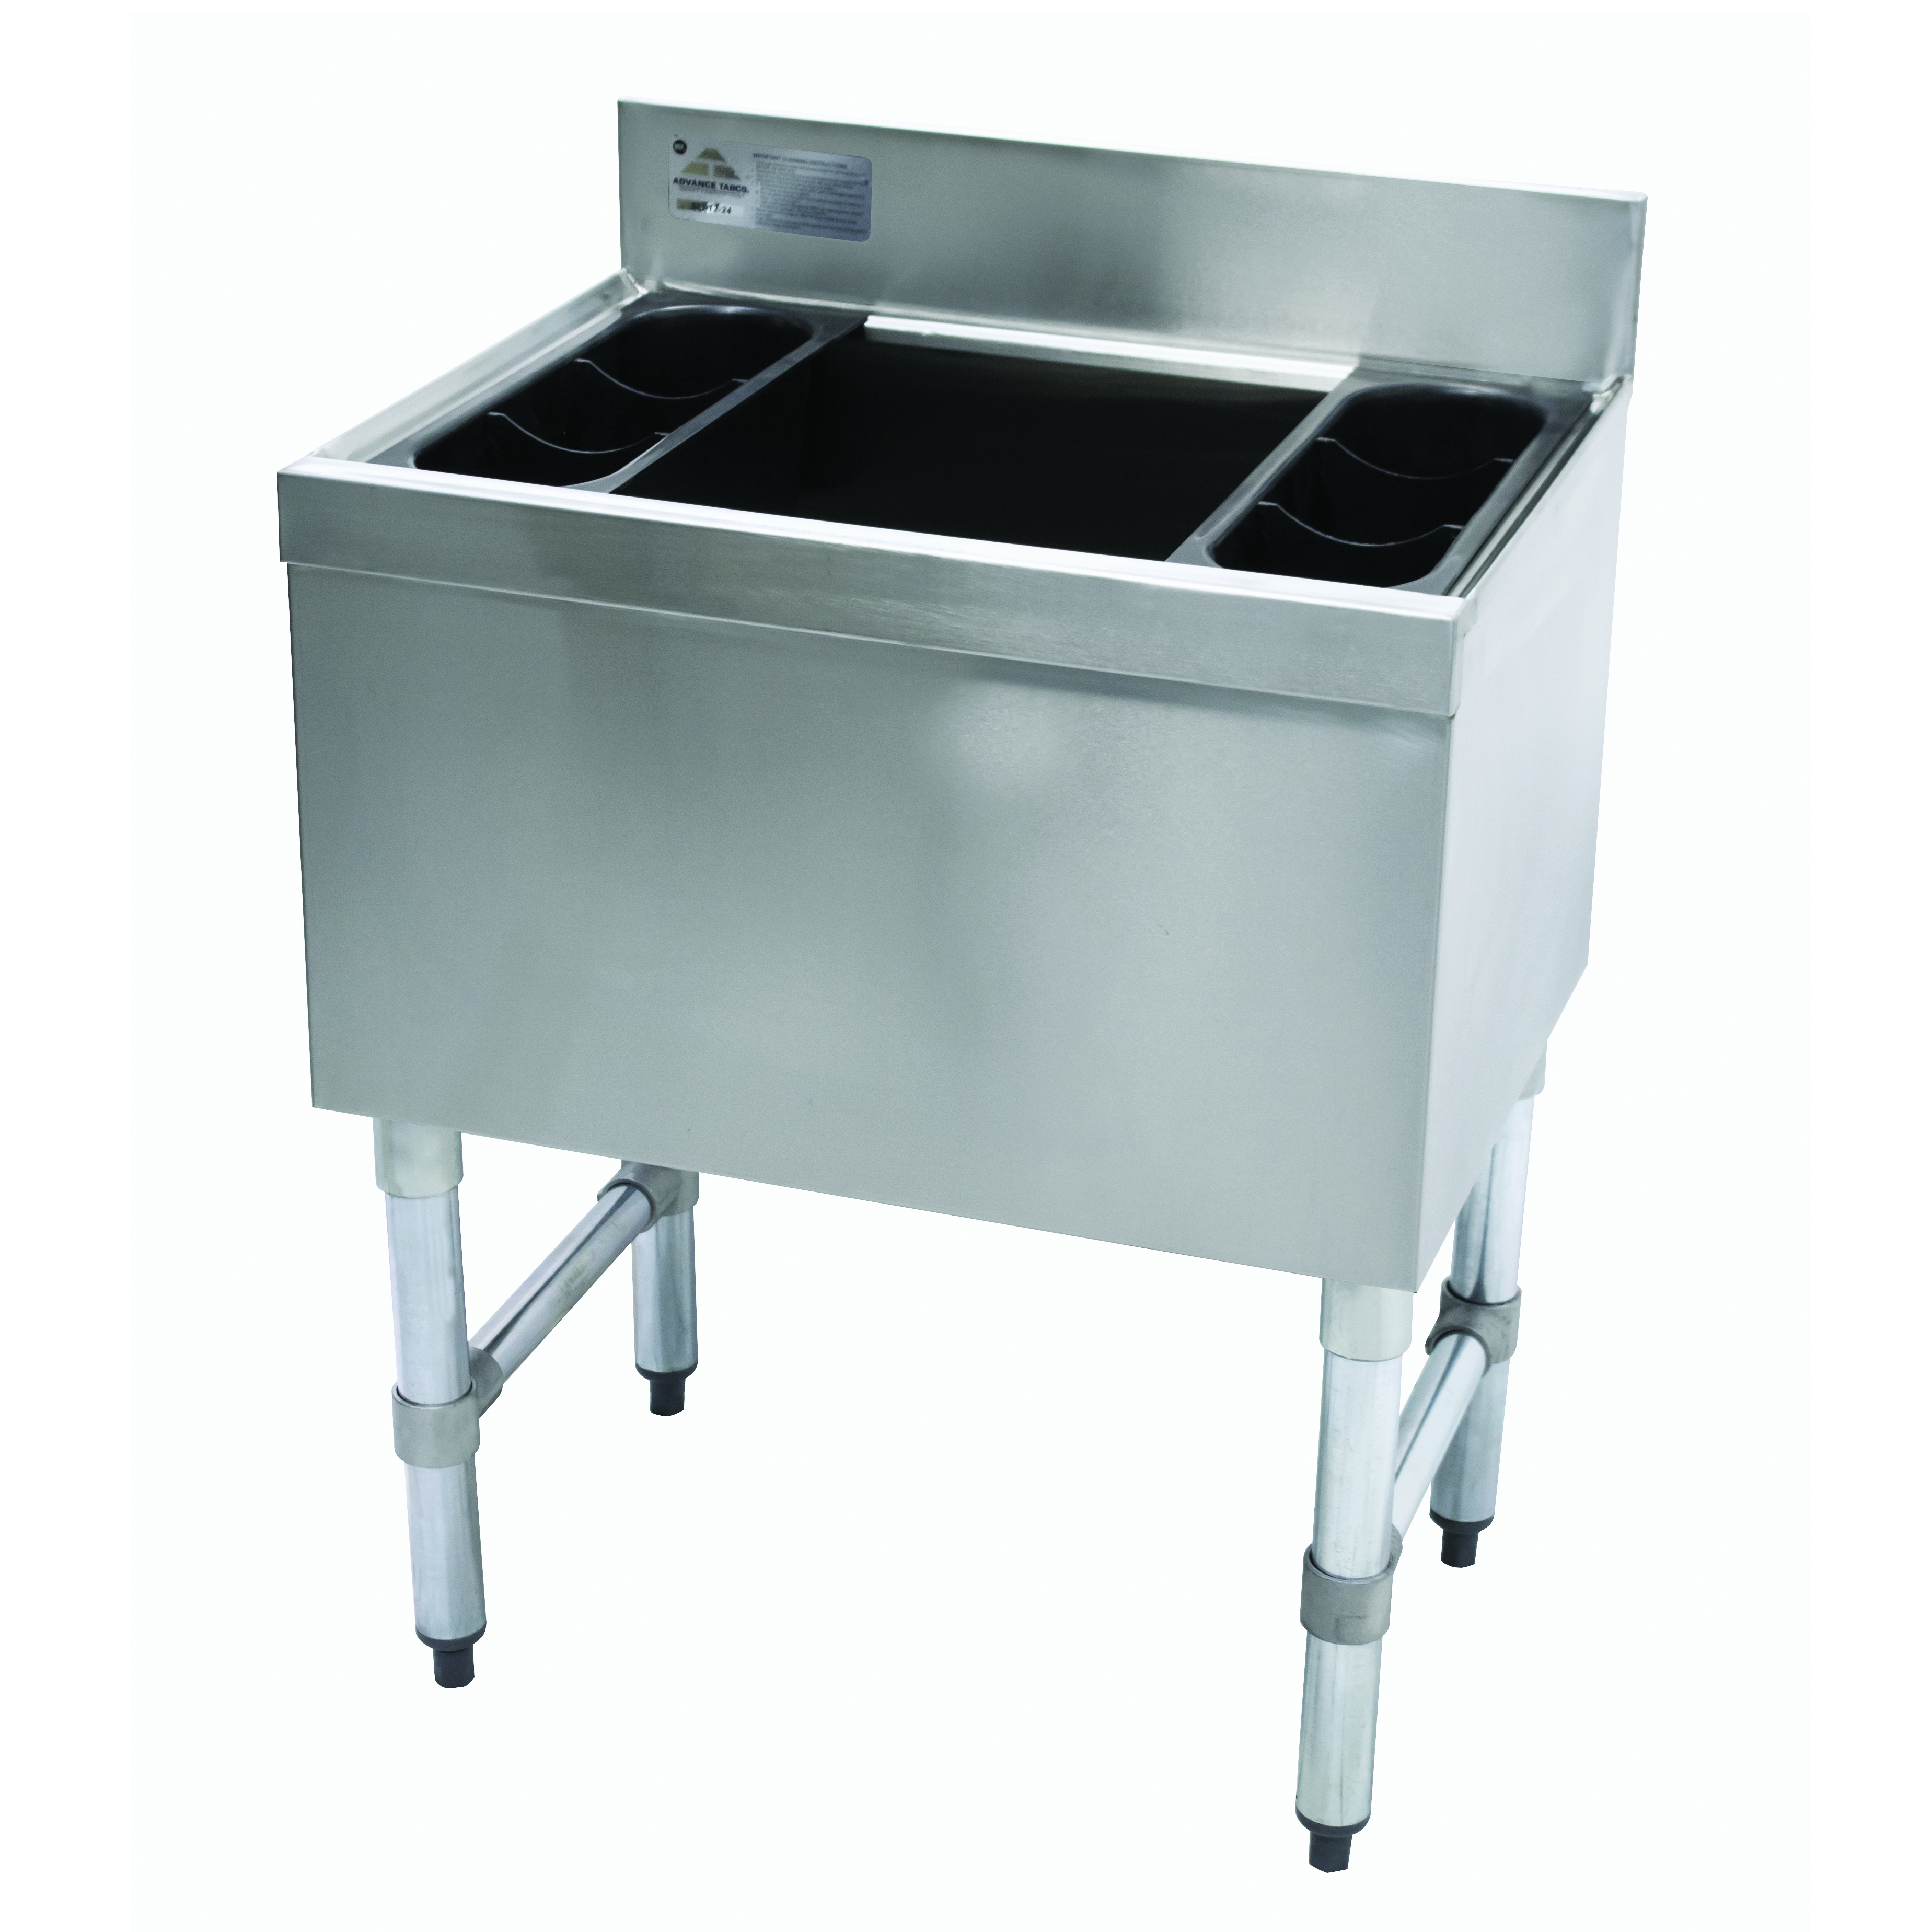 Advance Tabco SLI-12-30-X underbar ice bin/cocktail unit